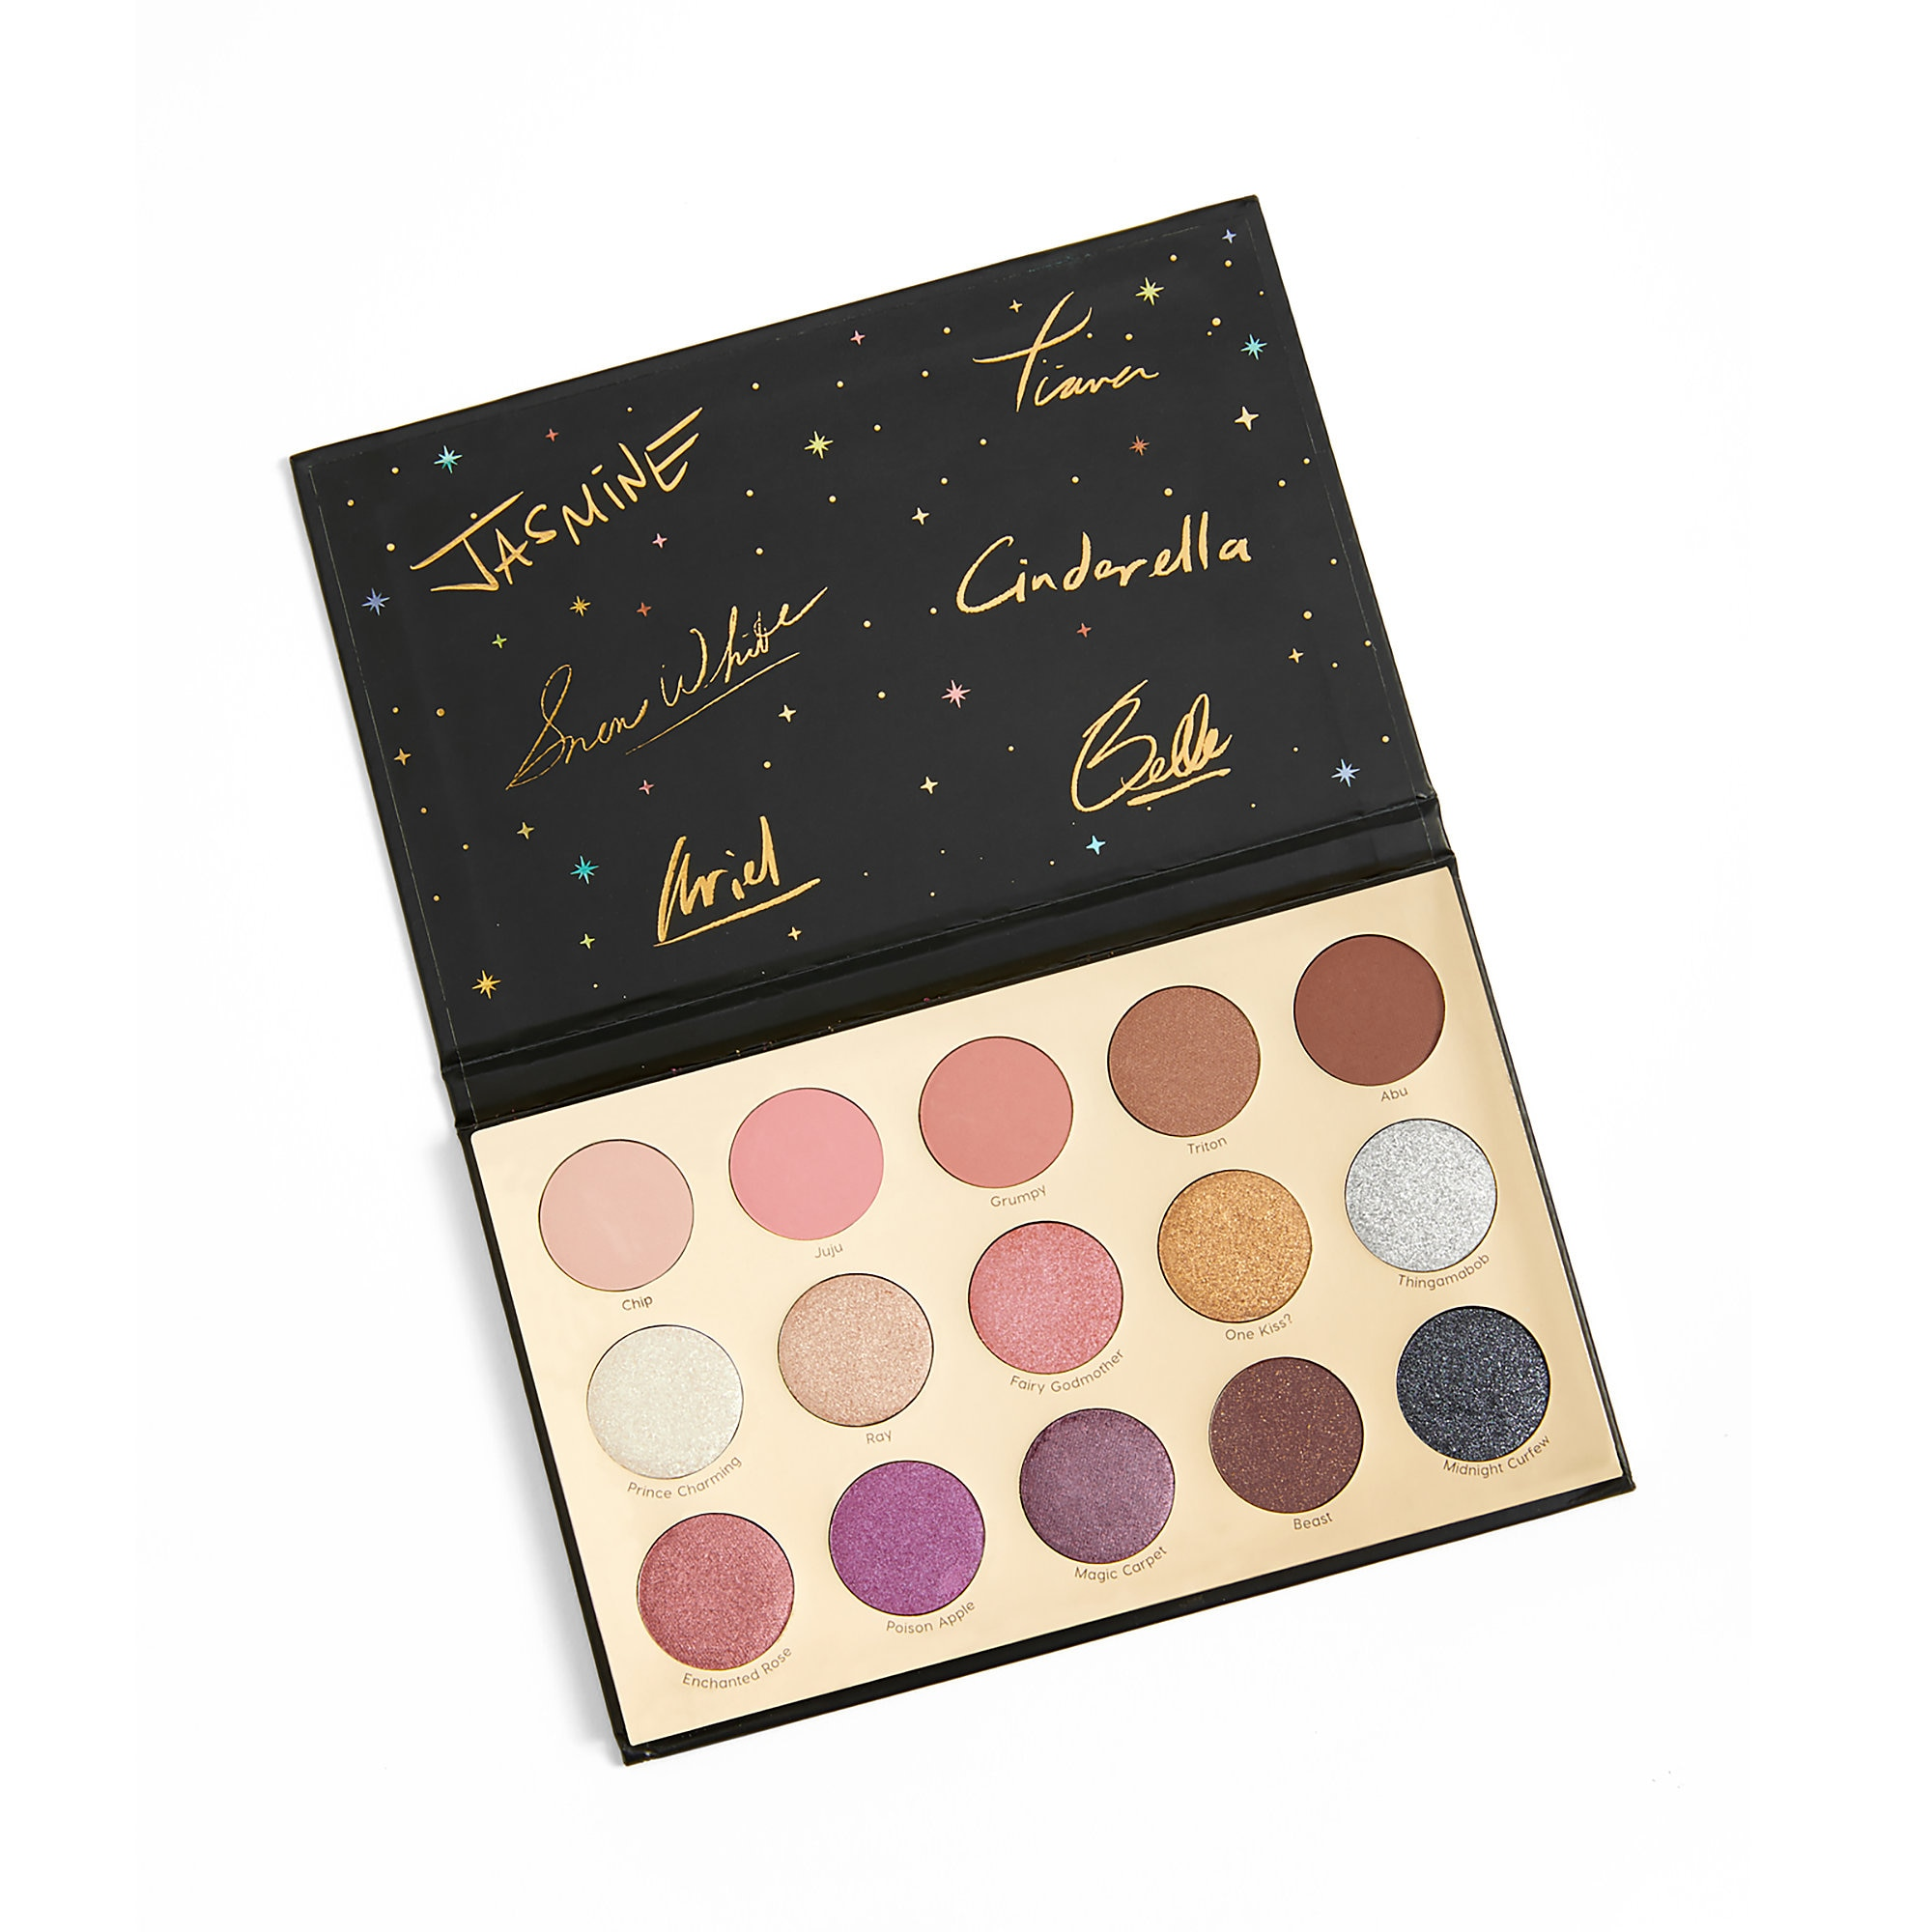 superior Disney Princess Signature Colors Part - 14: Product Image of Disney Princess u0027u0027Itu0027s a Princess Thingu0027u0027 Eyeshadow  Palette by